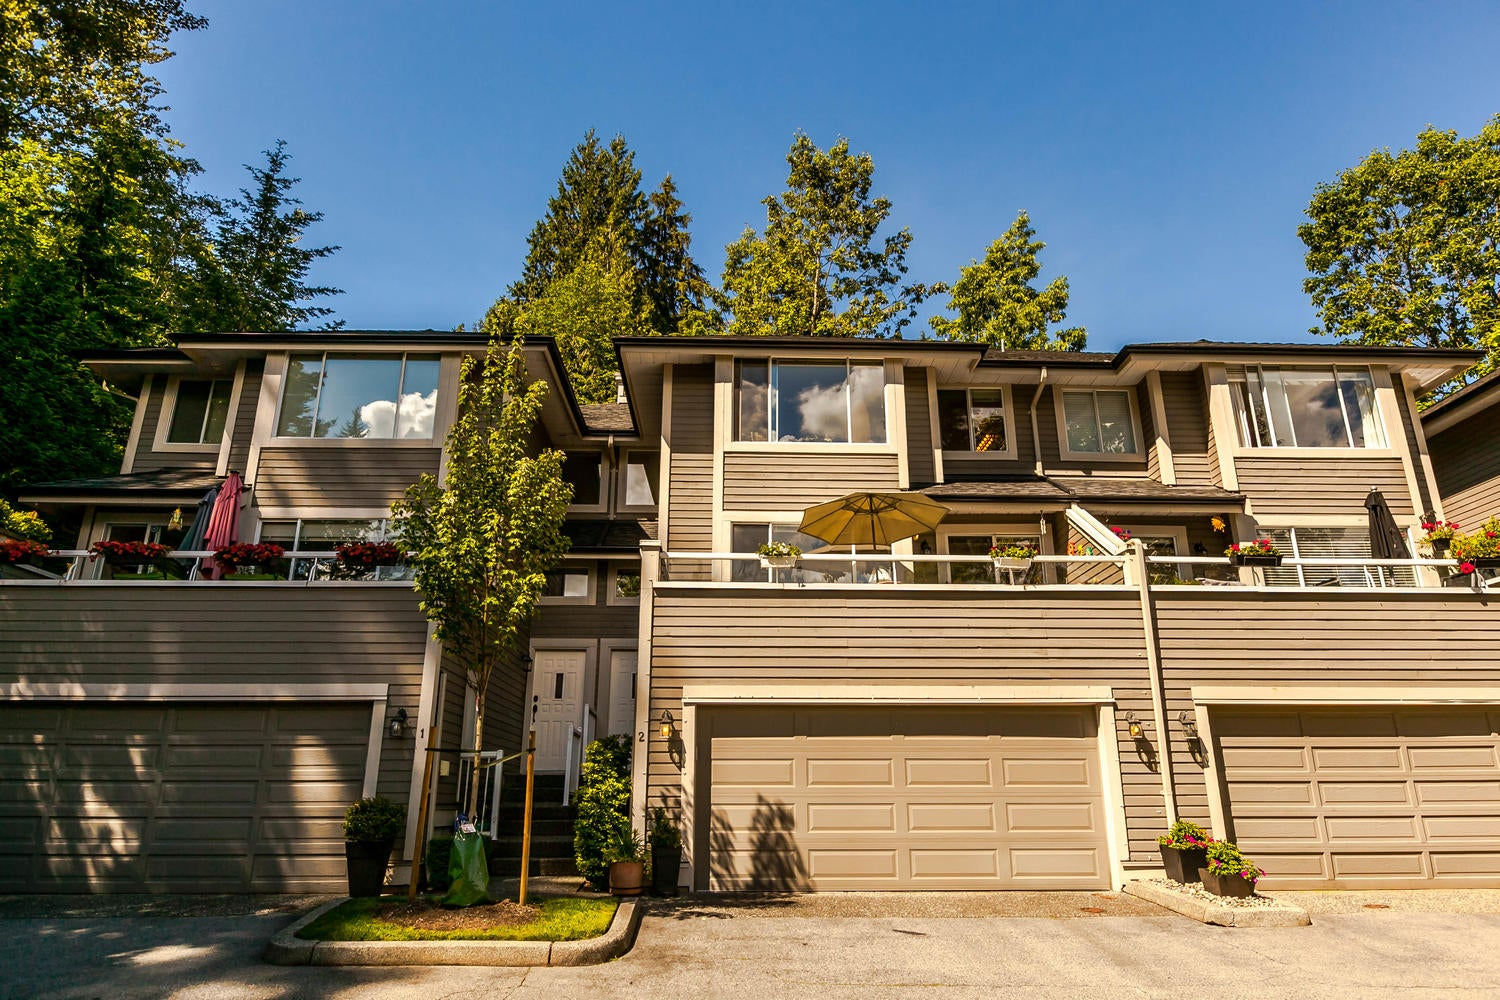 2 181 RAVINE DRIVE - Heritage Mountain Townhouse for sale, 3 Bedrooms (R2180403) #1